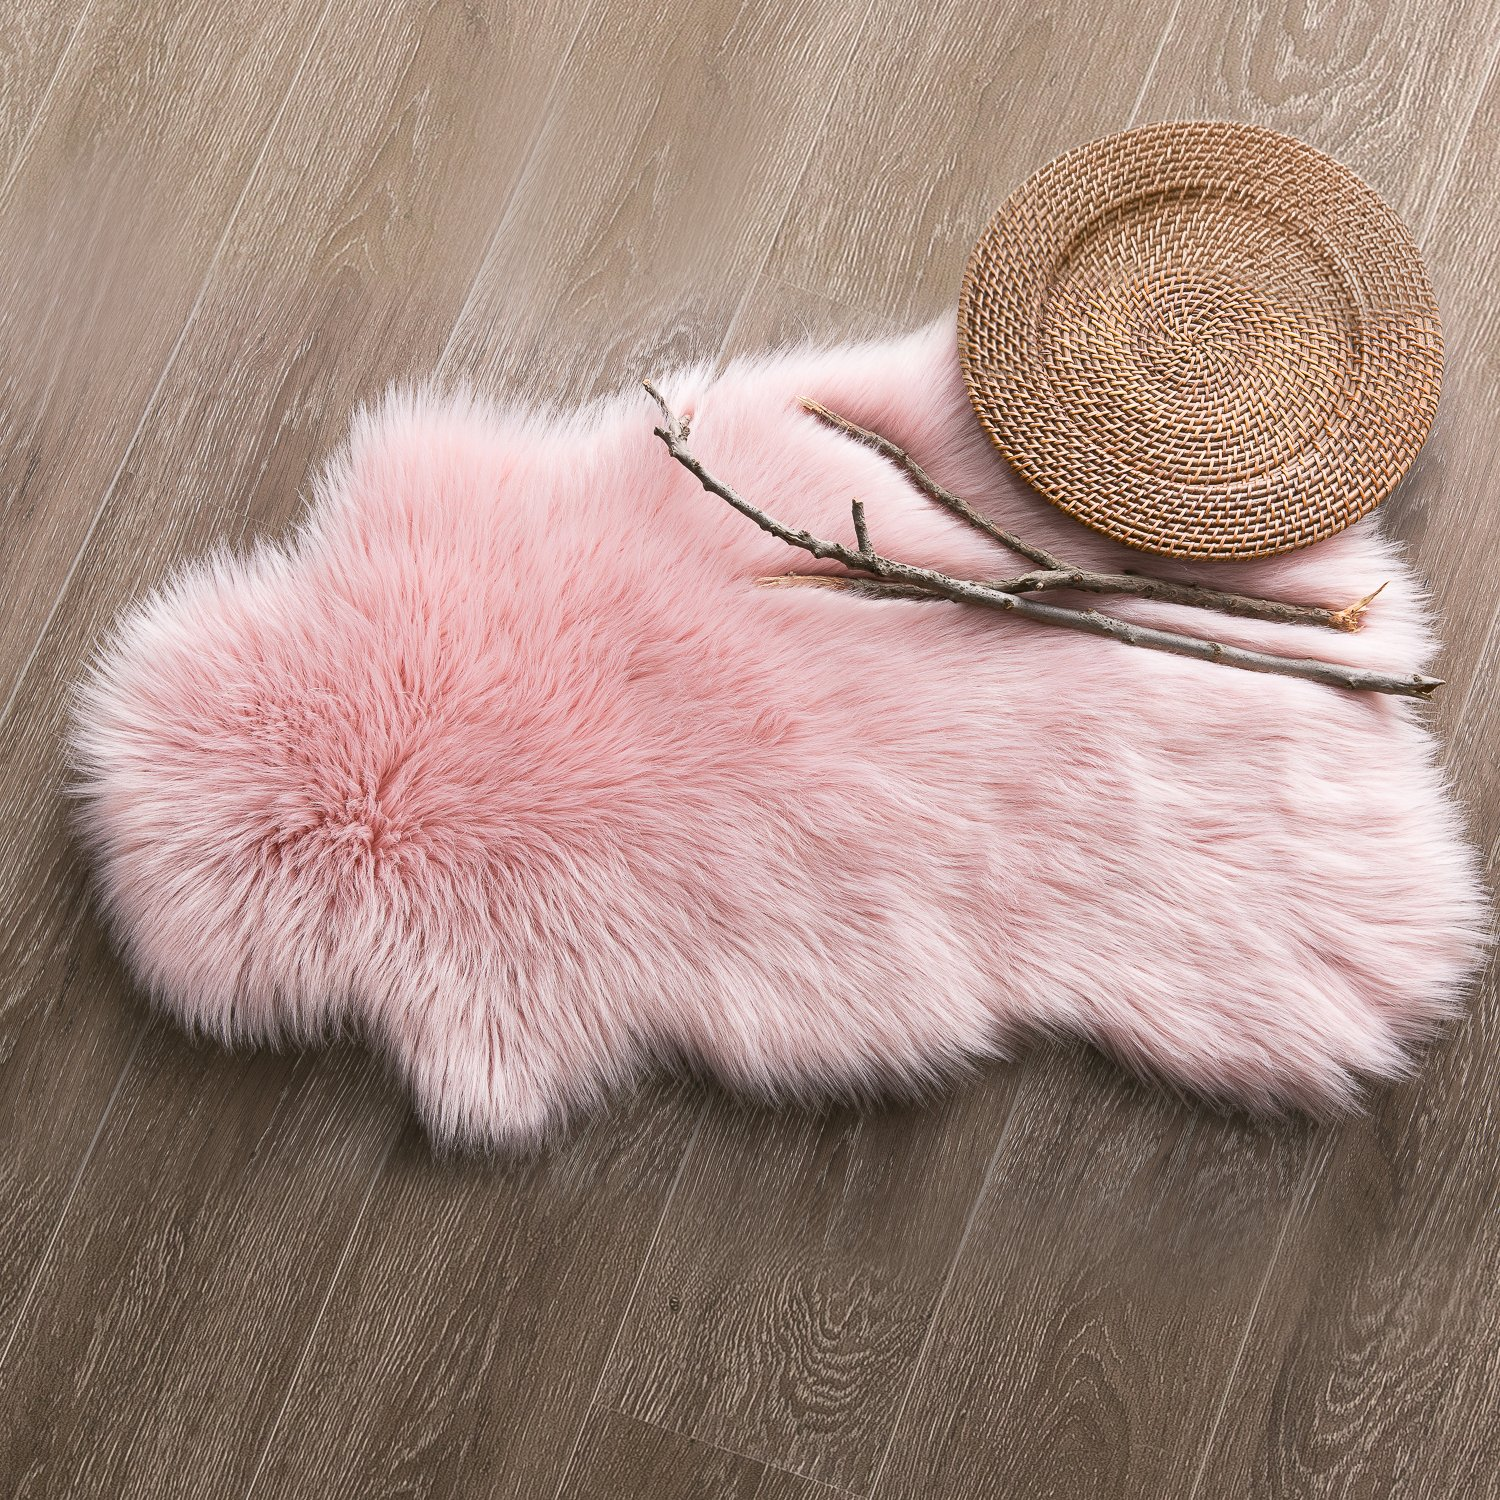 Ashler Soft Faux Sheepskin Fur Chair Couch Cover Area Rug For Bedroom Floor Sofa Living Room 2 x 3 Feet Pink by Ashler